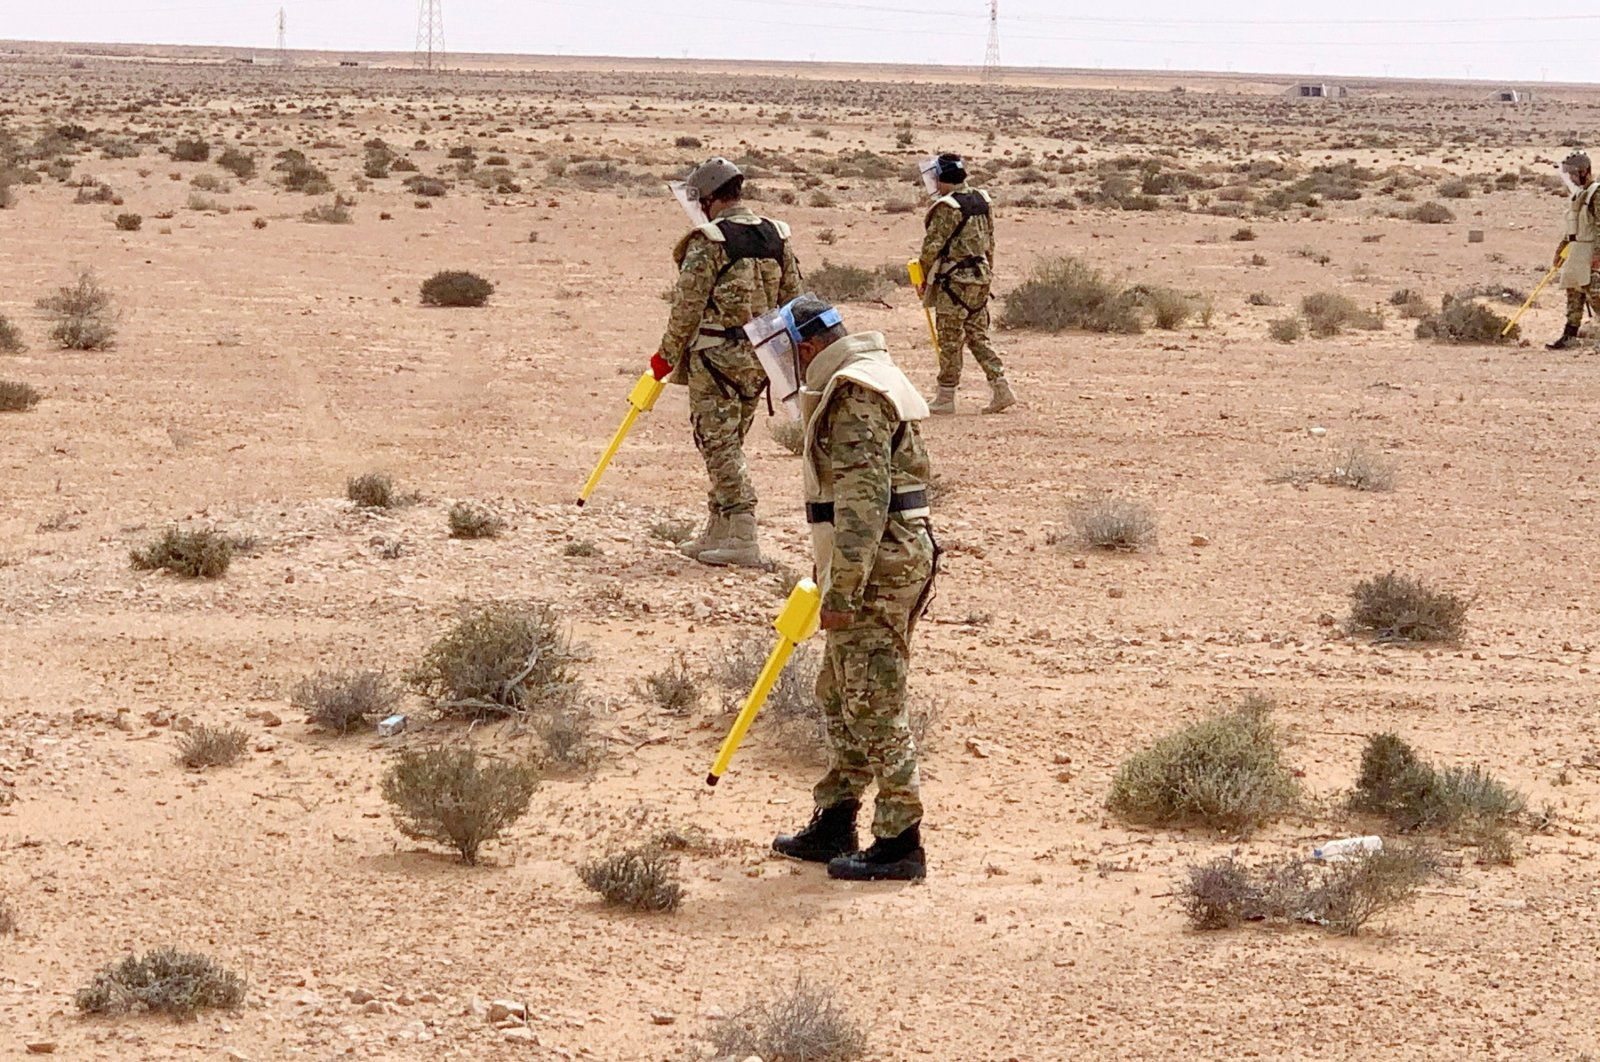 Members of a military engineering team dismantle mines in Abu Grein, Libya, March 13, 2021. (REUTERS Photo)